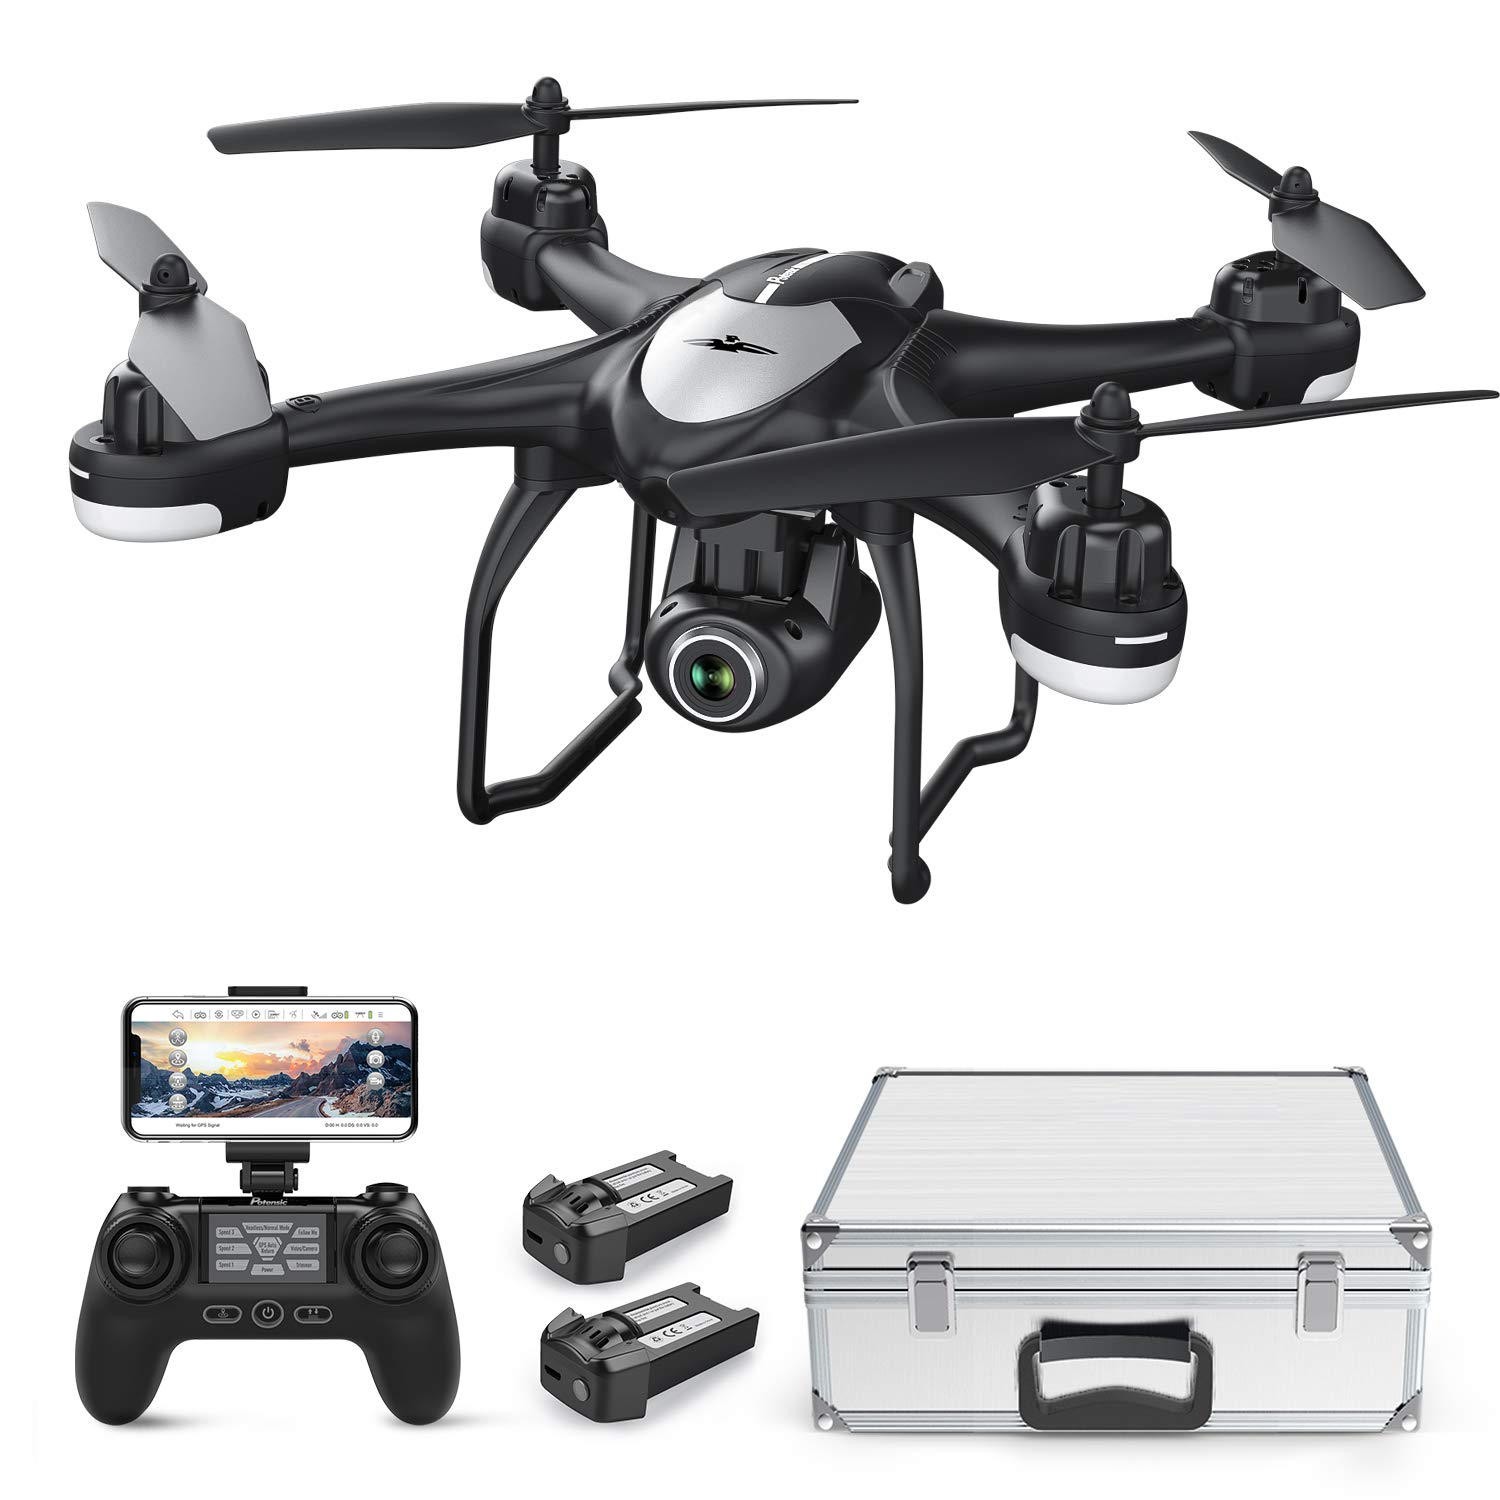 Drone with 1080P HD Camera, Potensic T18 GPS FPV RC Quadcopter with Adjustable Wide-Angle WiFi Camera, Auto Return Home, Altitude Hold, Follow Me, 2 Batteries and Aluminum Carrying Case by Potensic